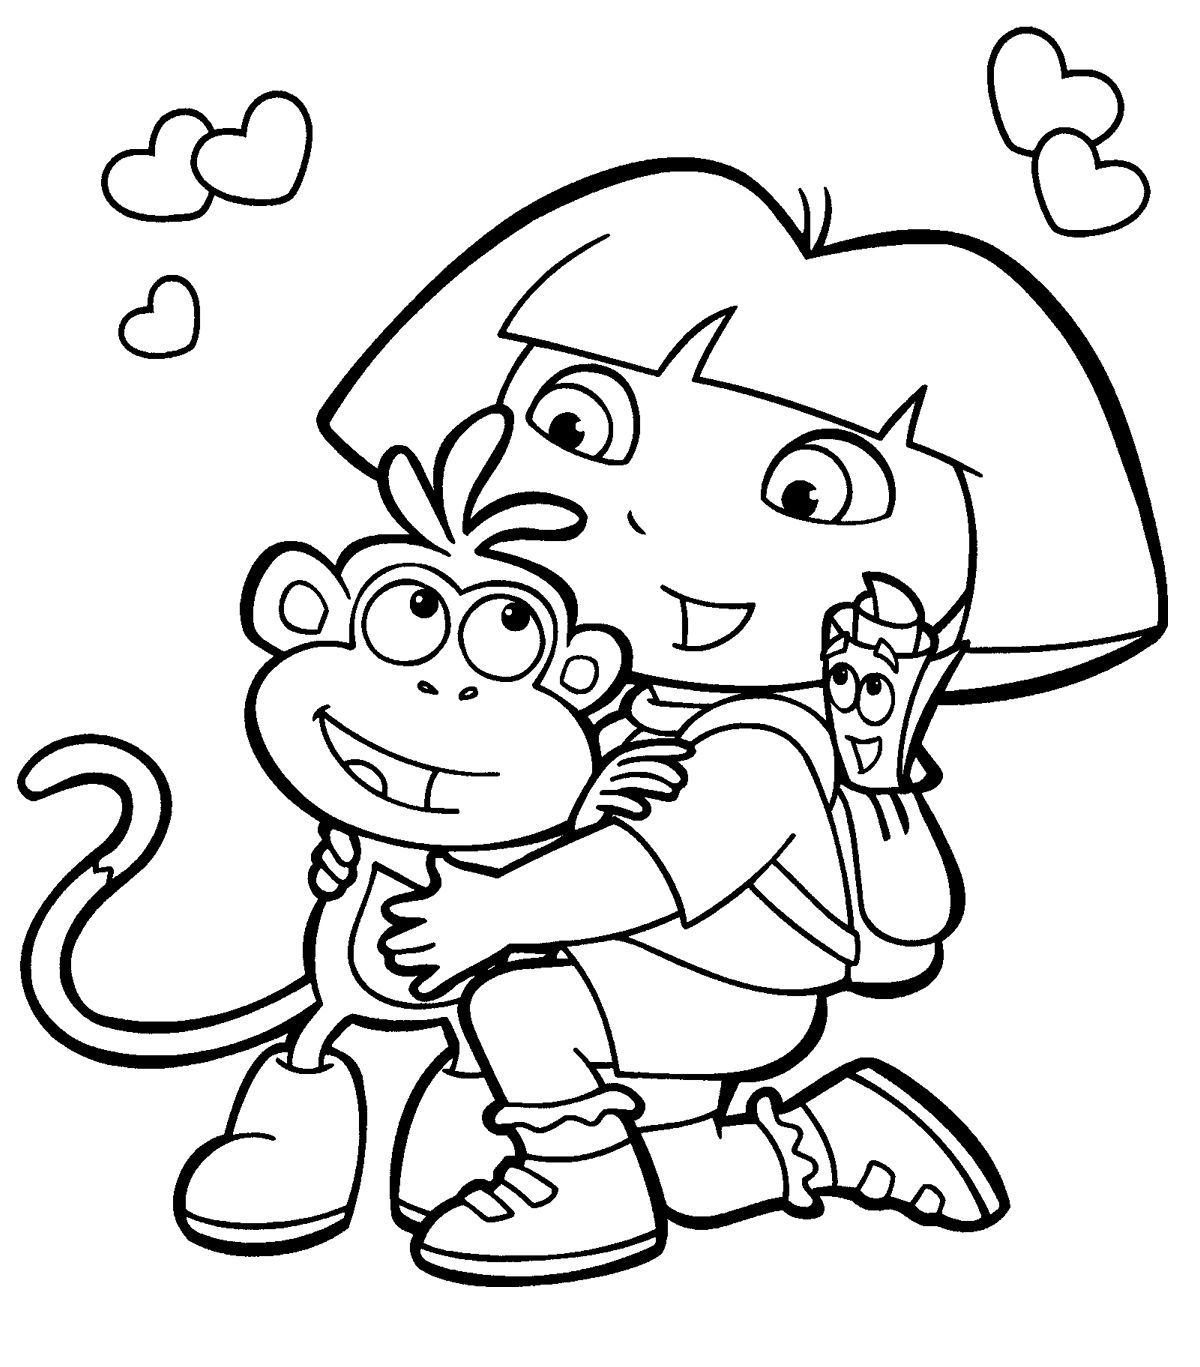 Coloring Dora The Explorer Coloring Book Dora The Explorer Coloring Dora The Explorer Co Kids Printable Coloring Pages Birthday Coloring Pages Dora Coloring